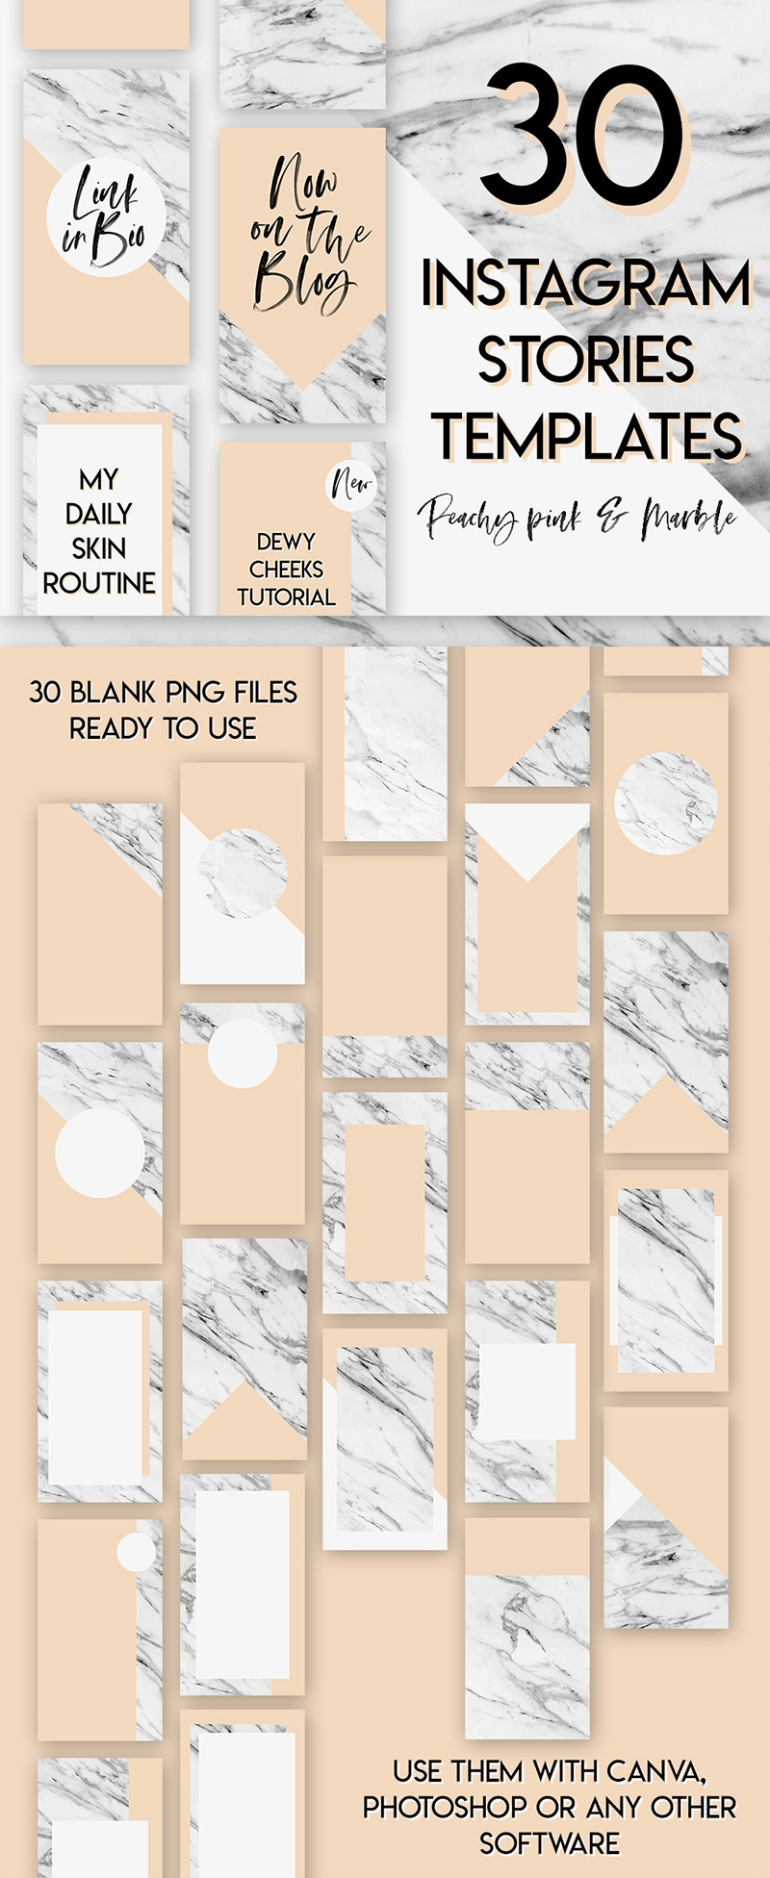 30 Blank Peachy Pink and Marble Instagram Stories Templates - by Branding Darling